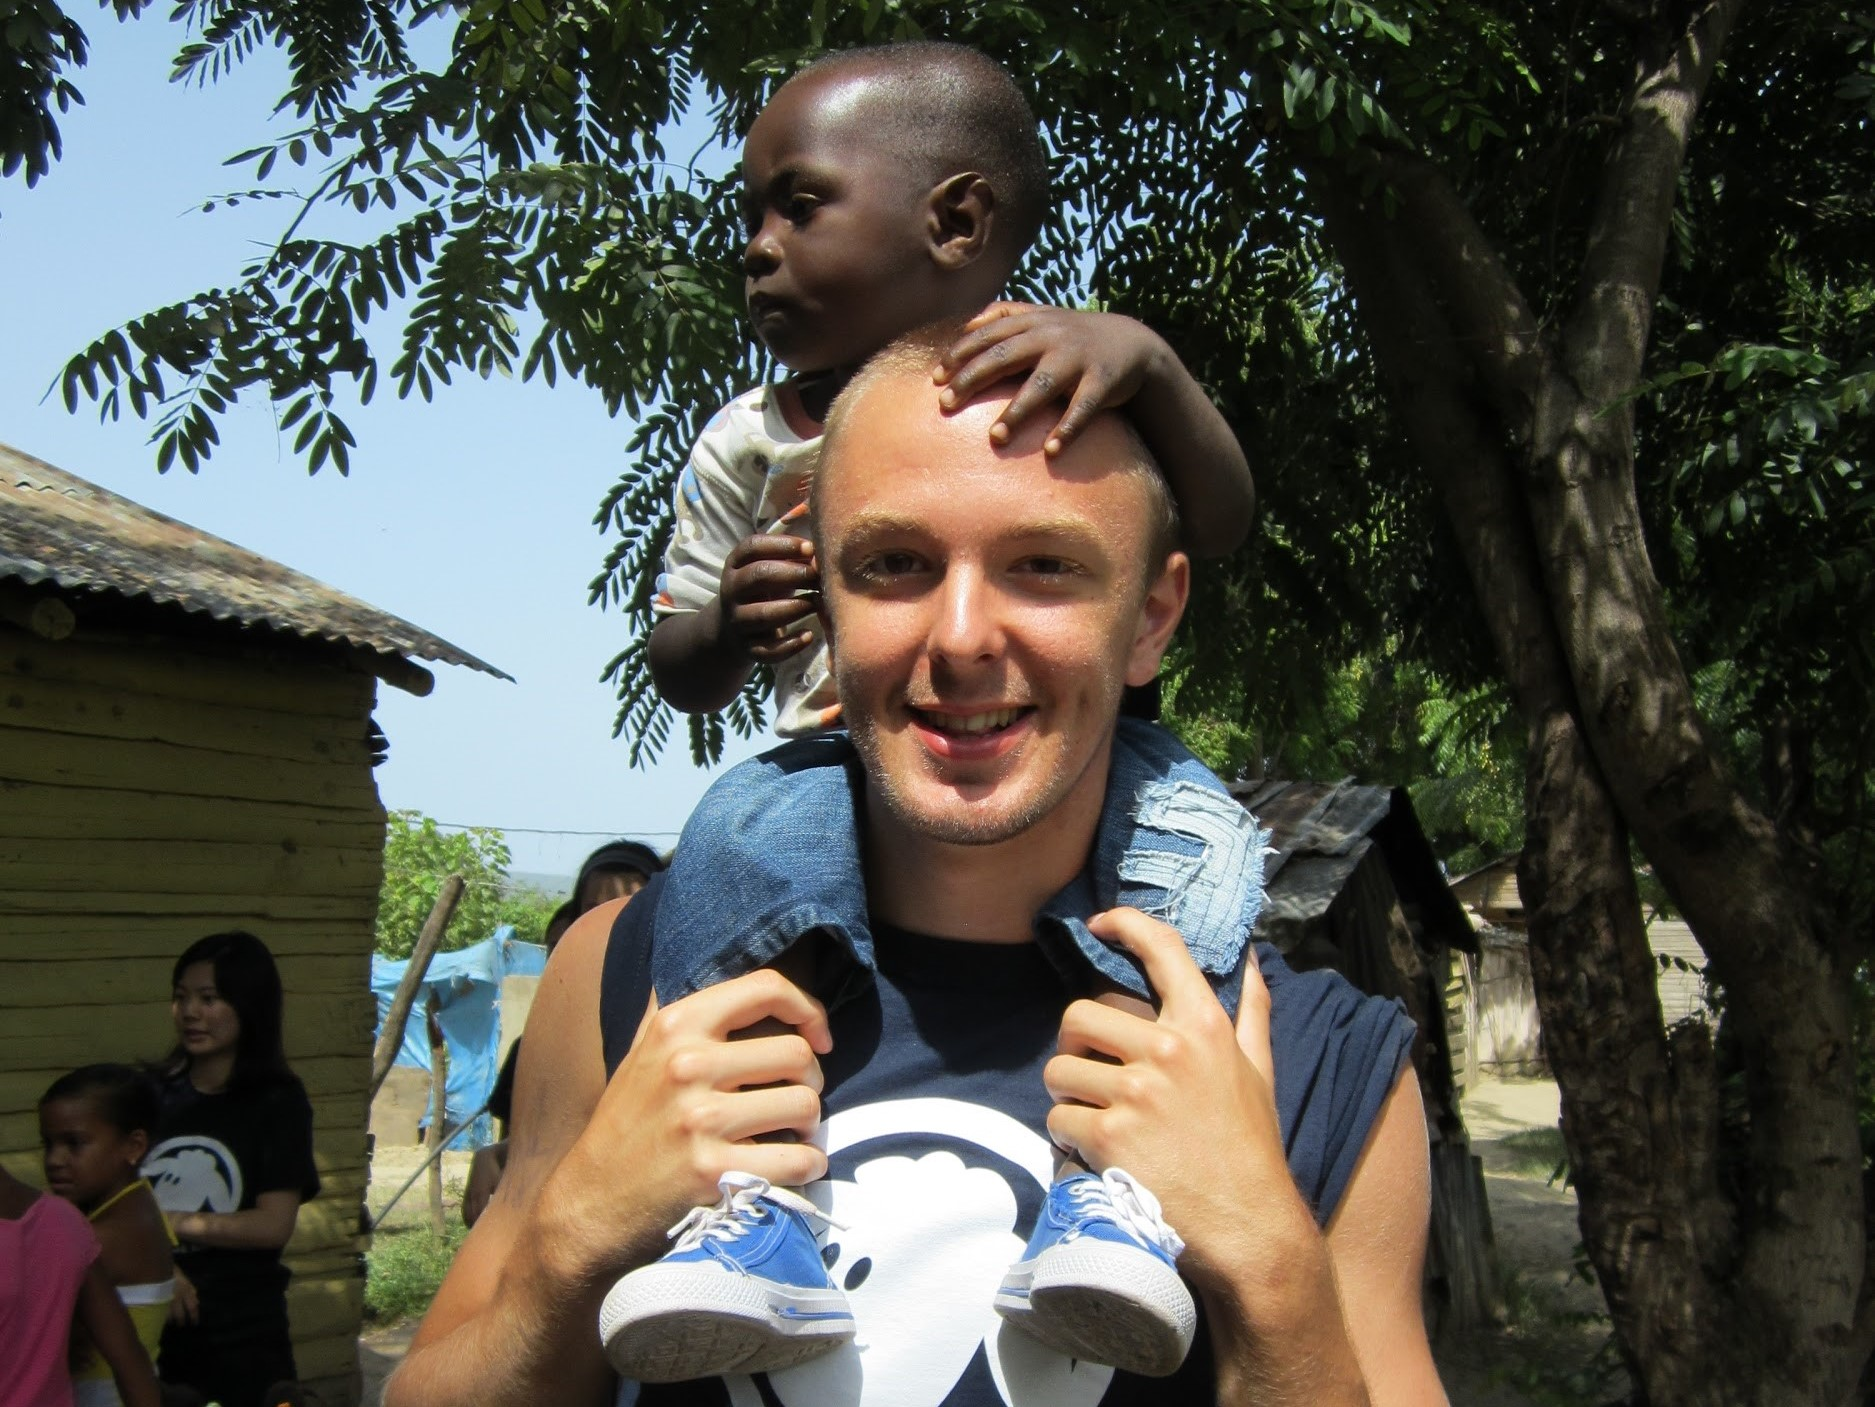 JT working with children abroad